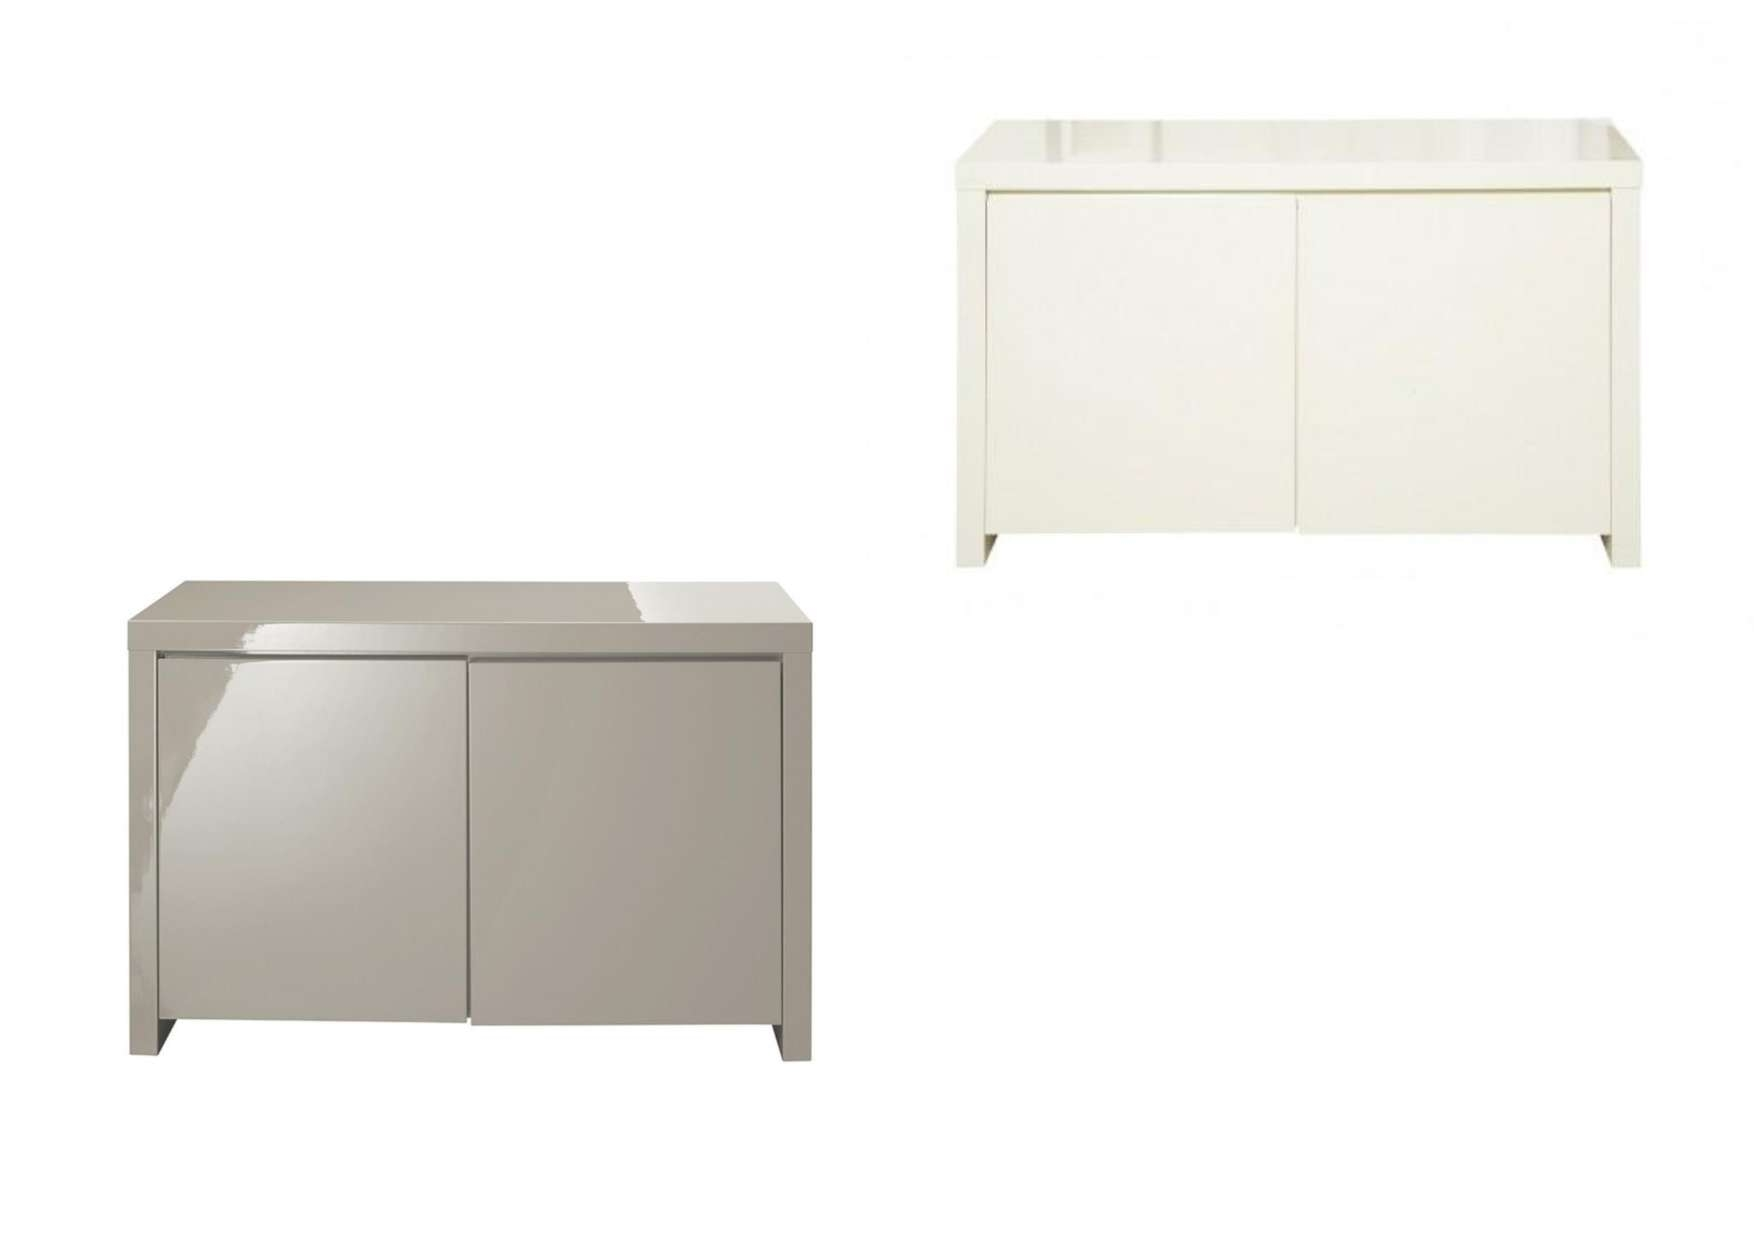 High Gloss Cream Or Stone 2 Door Sideboard Within High Gloss Cream Sideboards (View 12 of 20)